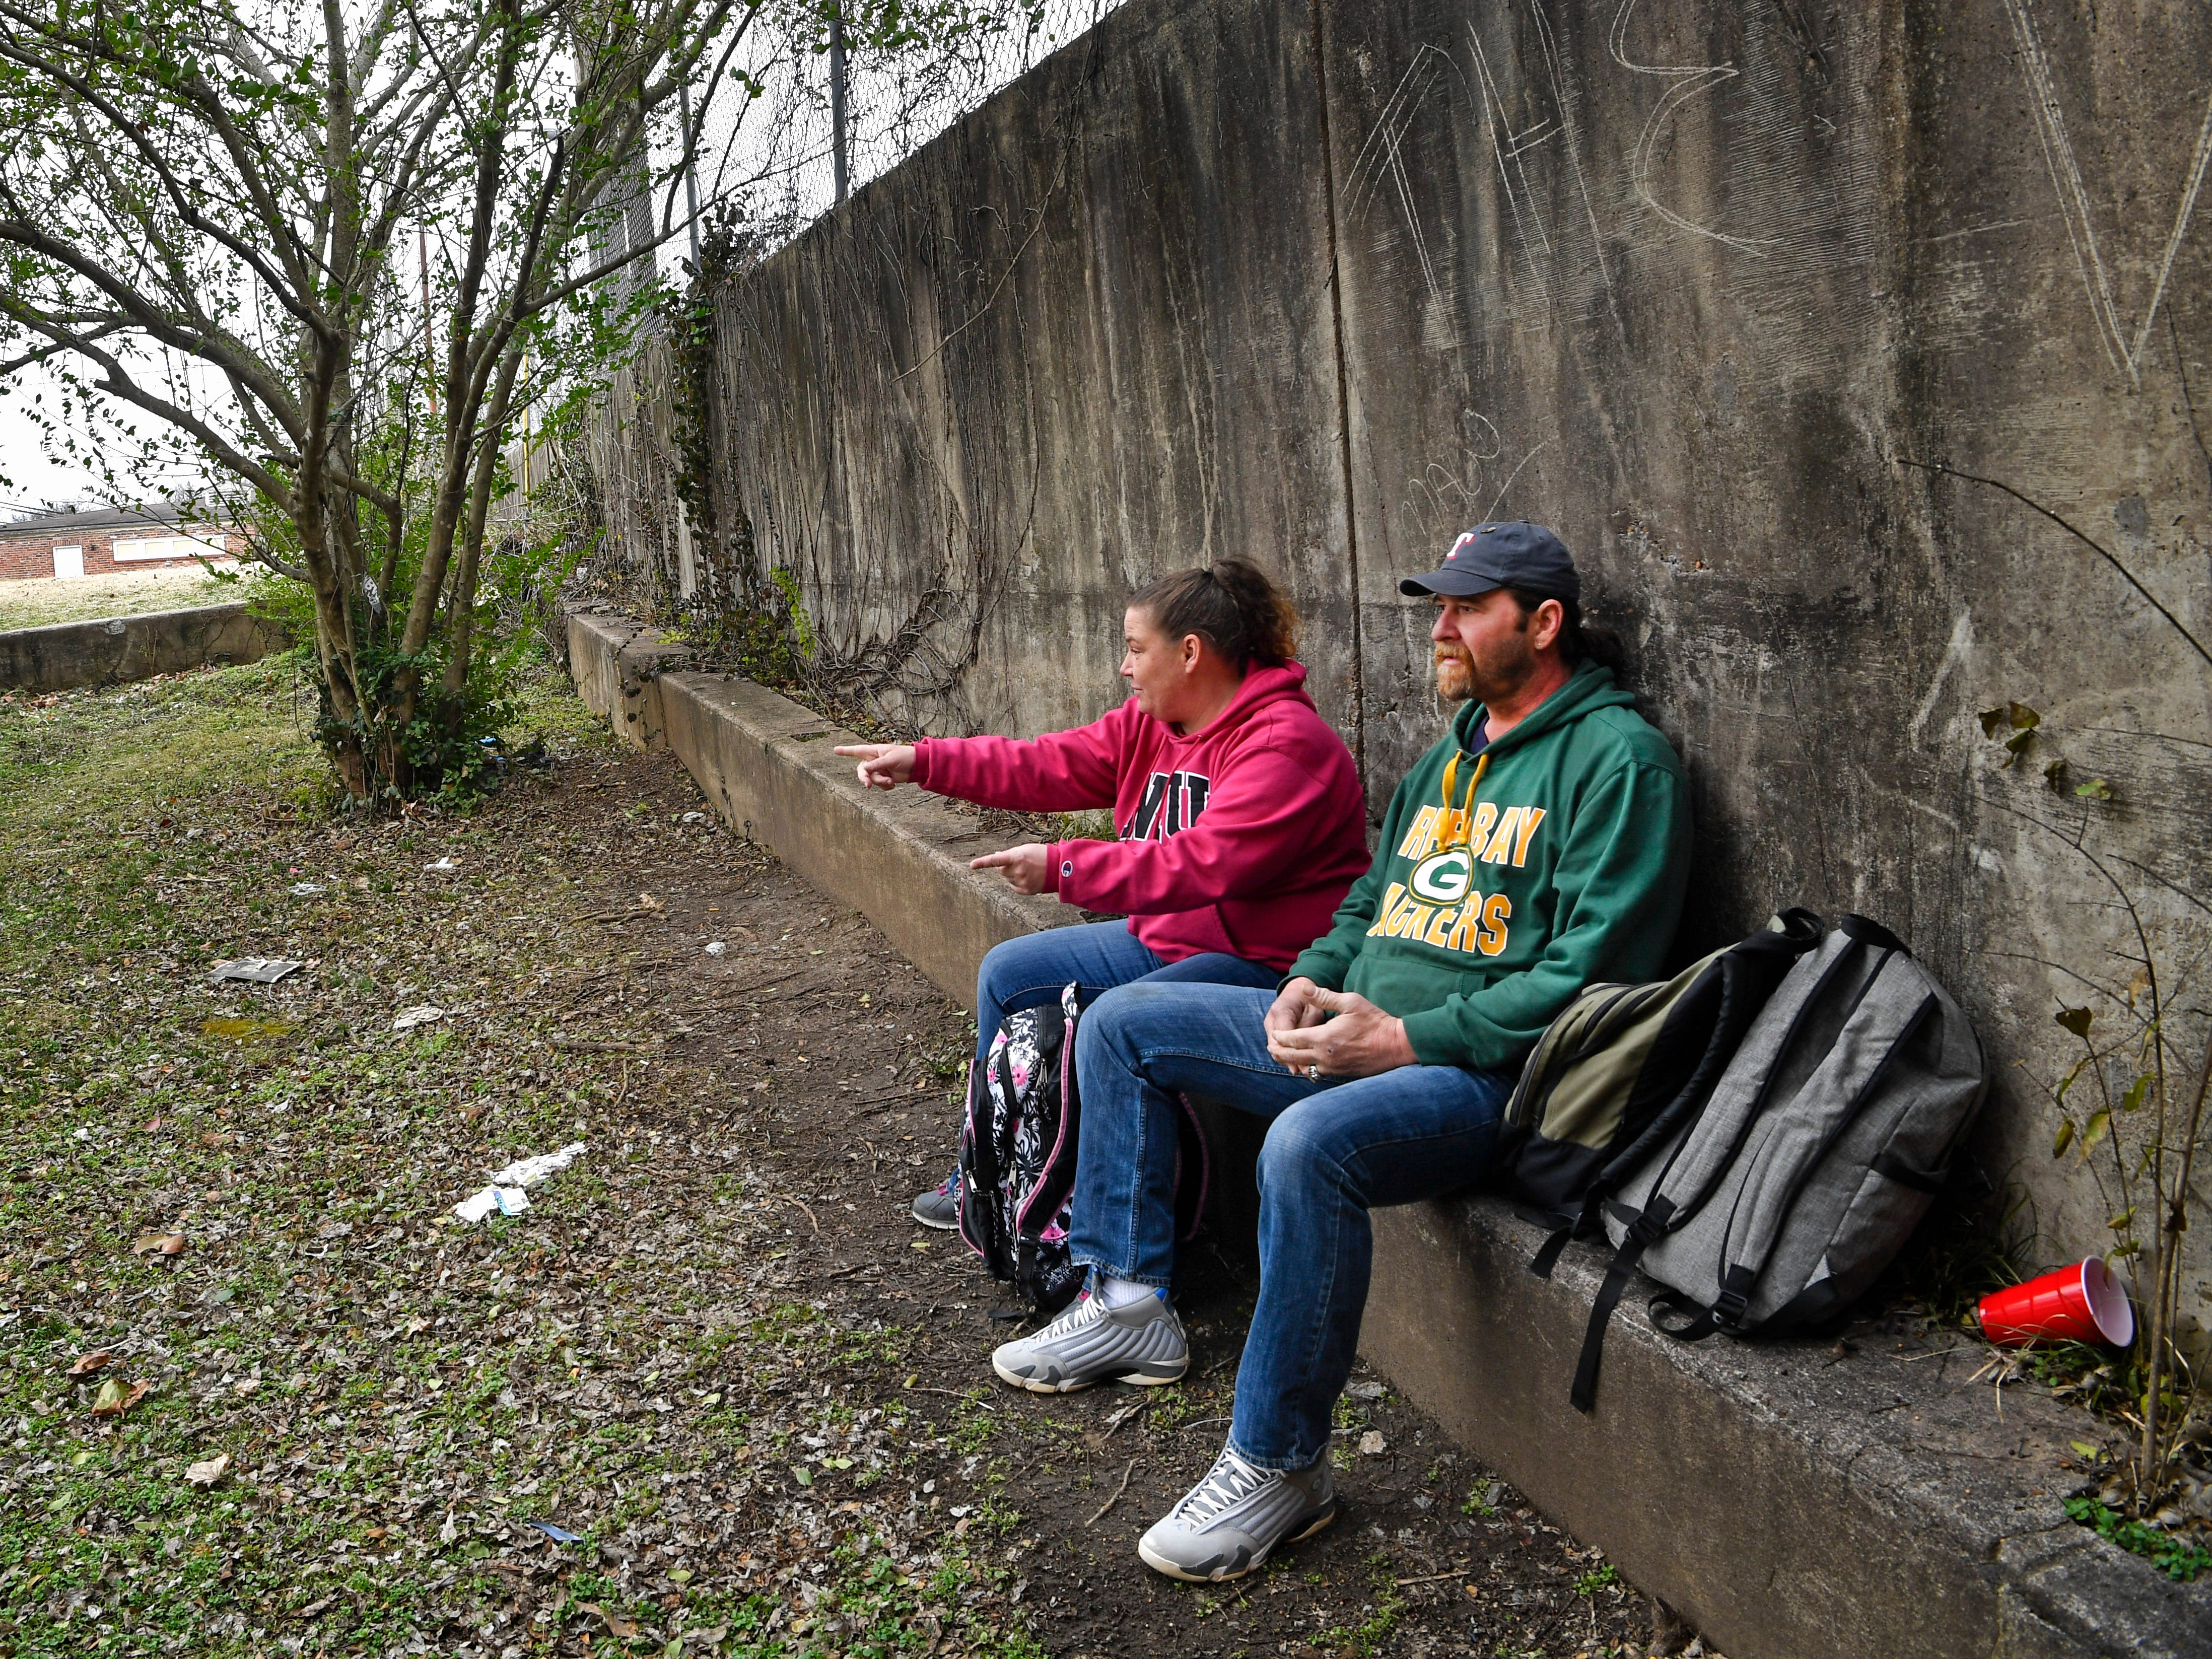 Tommi Jo French and Eddie Goering return to the vacant lot Monday, Jan. 28, 2019 in downtown Clarksville where they pitched a tent while homeless. They recently acquired an apartment.